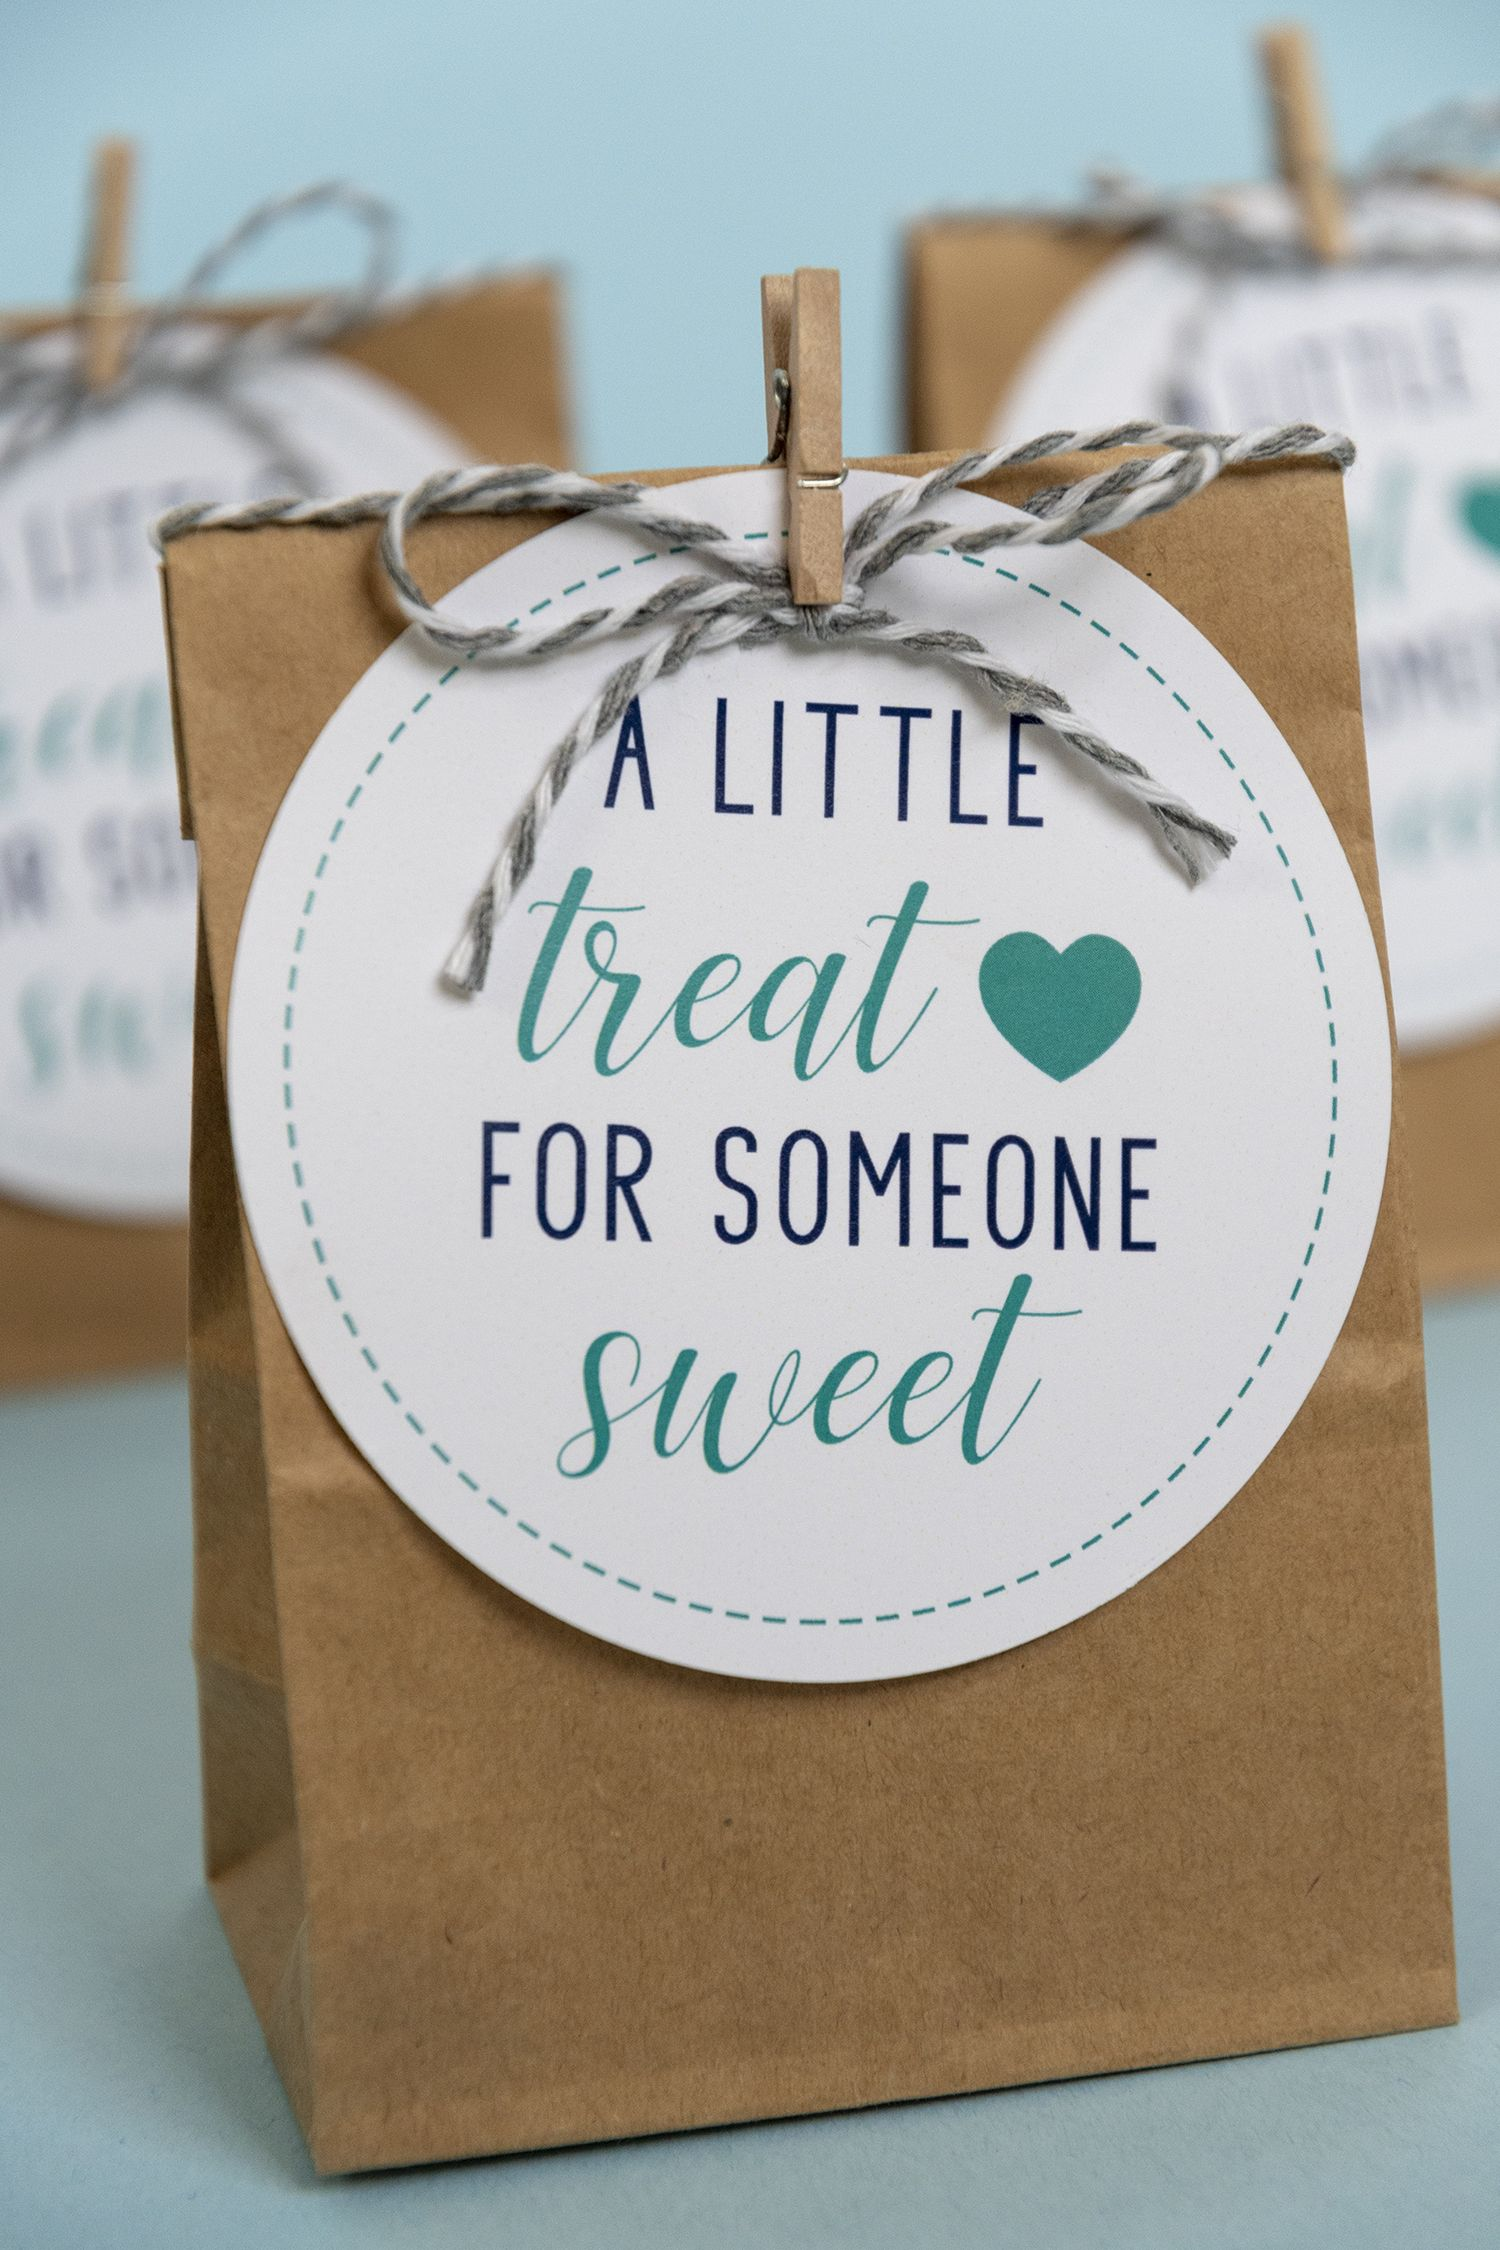 A Little Treat for Someone Sweet Free Printable Tags #employeeappreciationideas